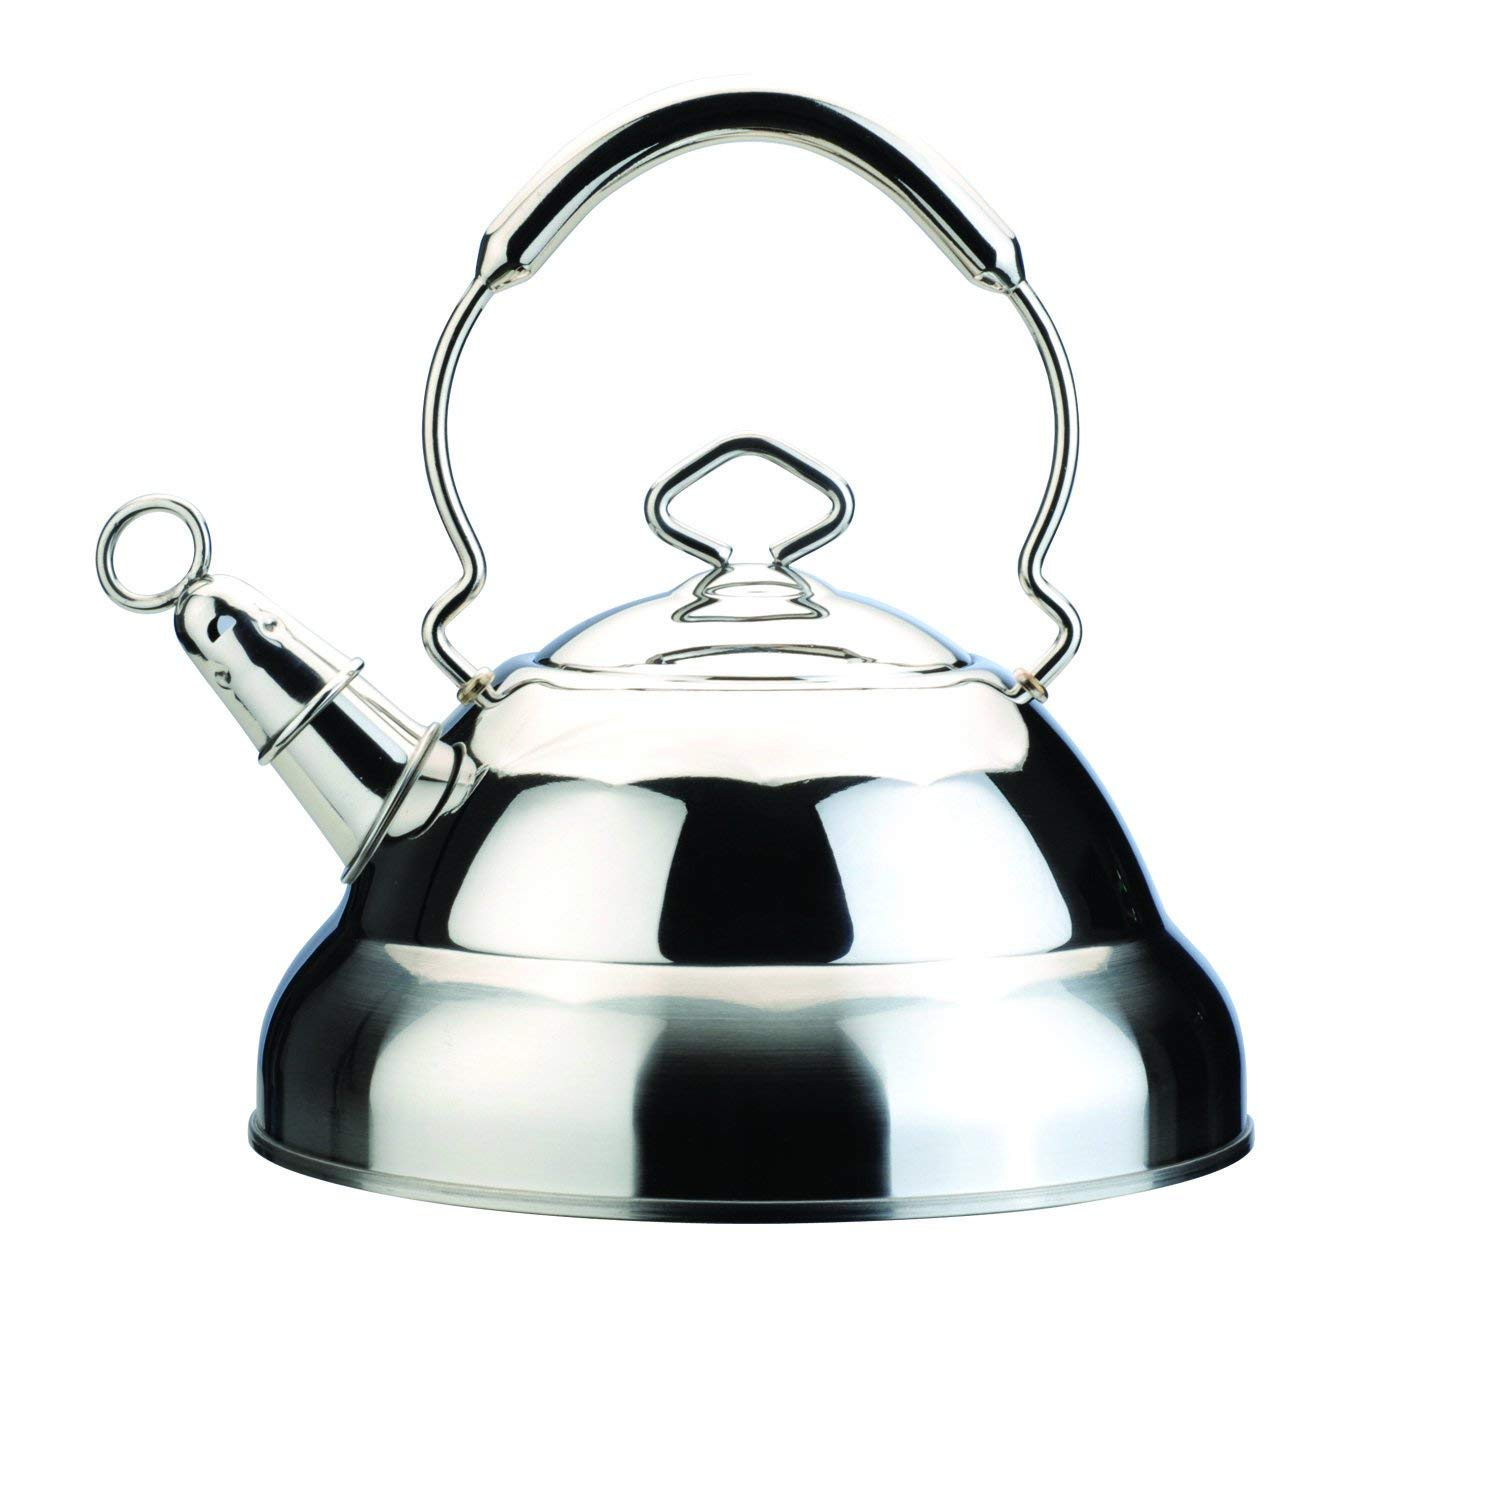 Berghoff 1104126 Whistling Tea Kettle, 11-Cups by Berghoff (Image #1)